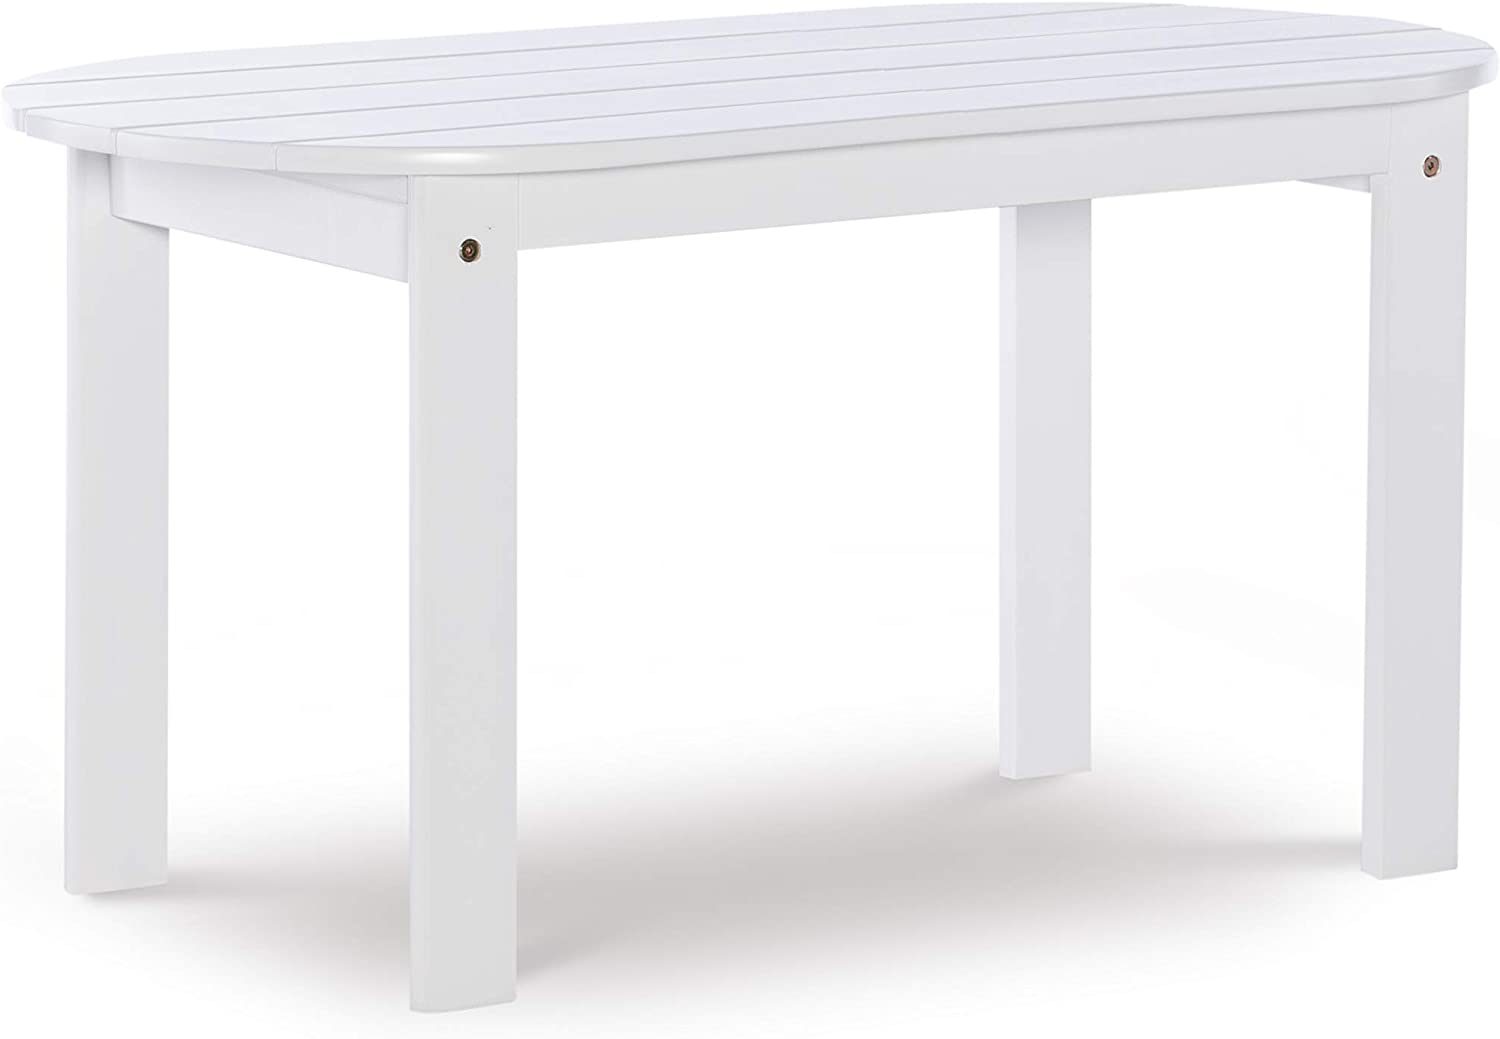 Linon Jayde Adirondack Coffee Table, White